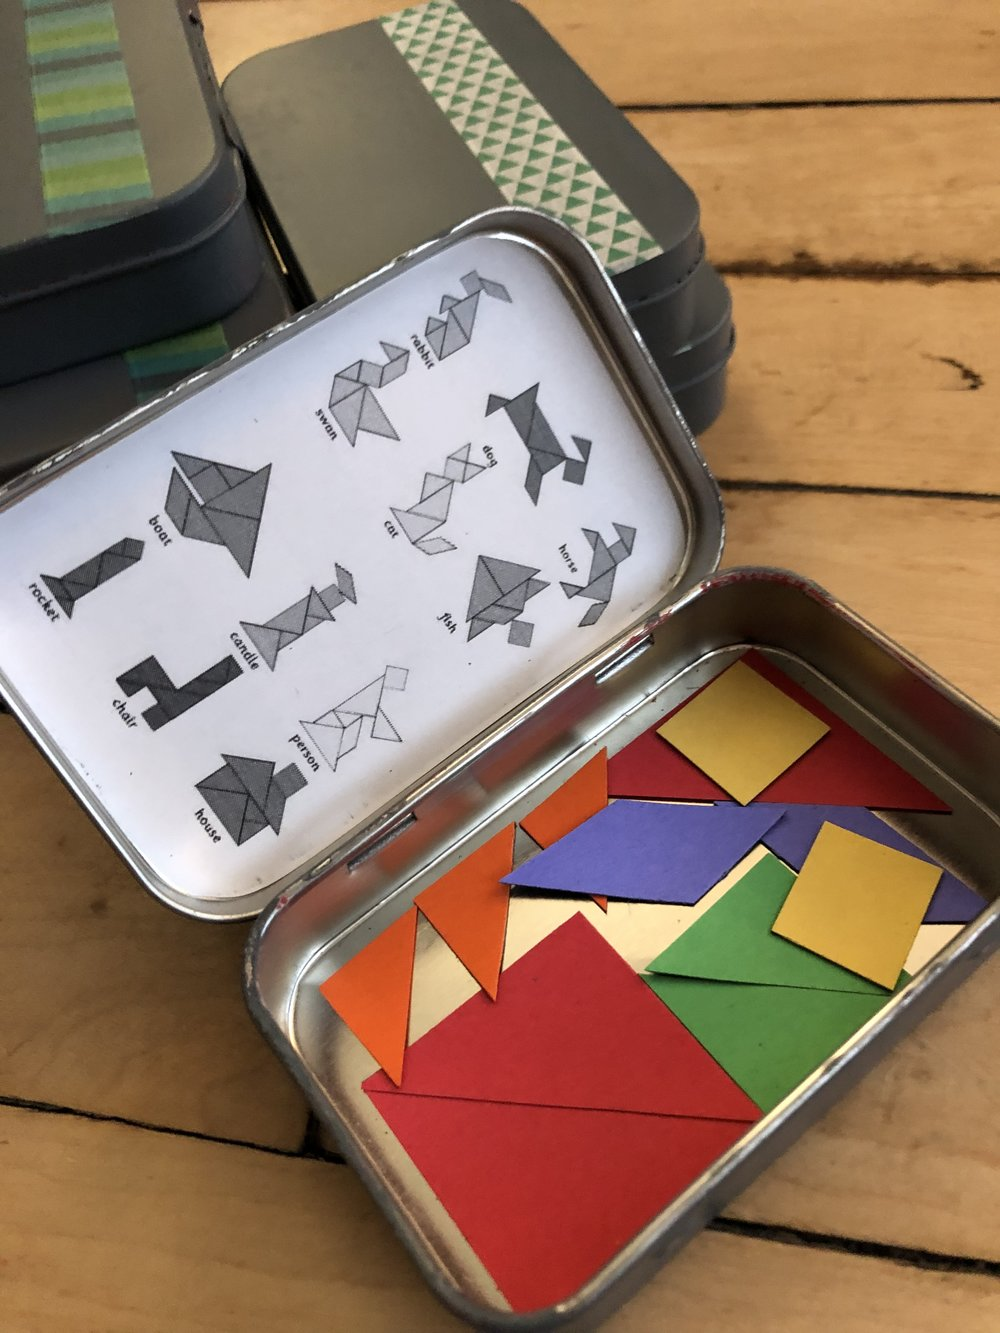 One tin contained tangrams. I used  sticky back magnet paper  to create the shapes from a simple template found  online . And on the inside of the lid printed some more common puzzles.